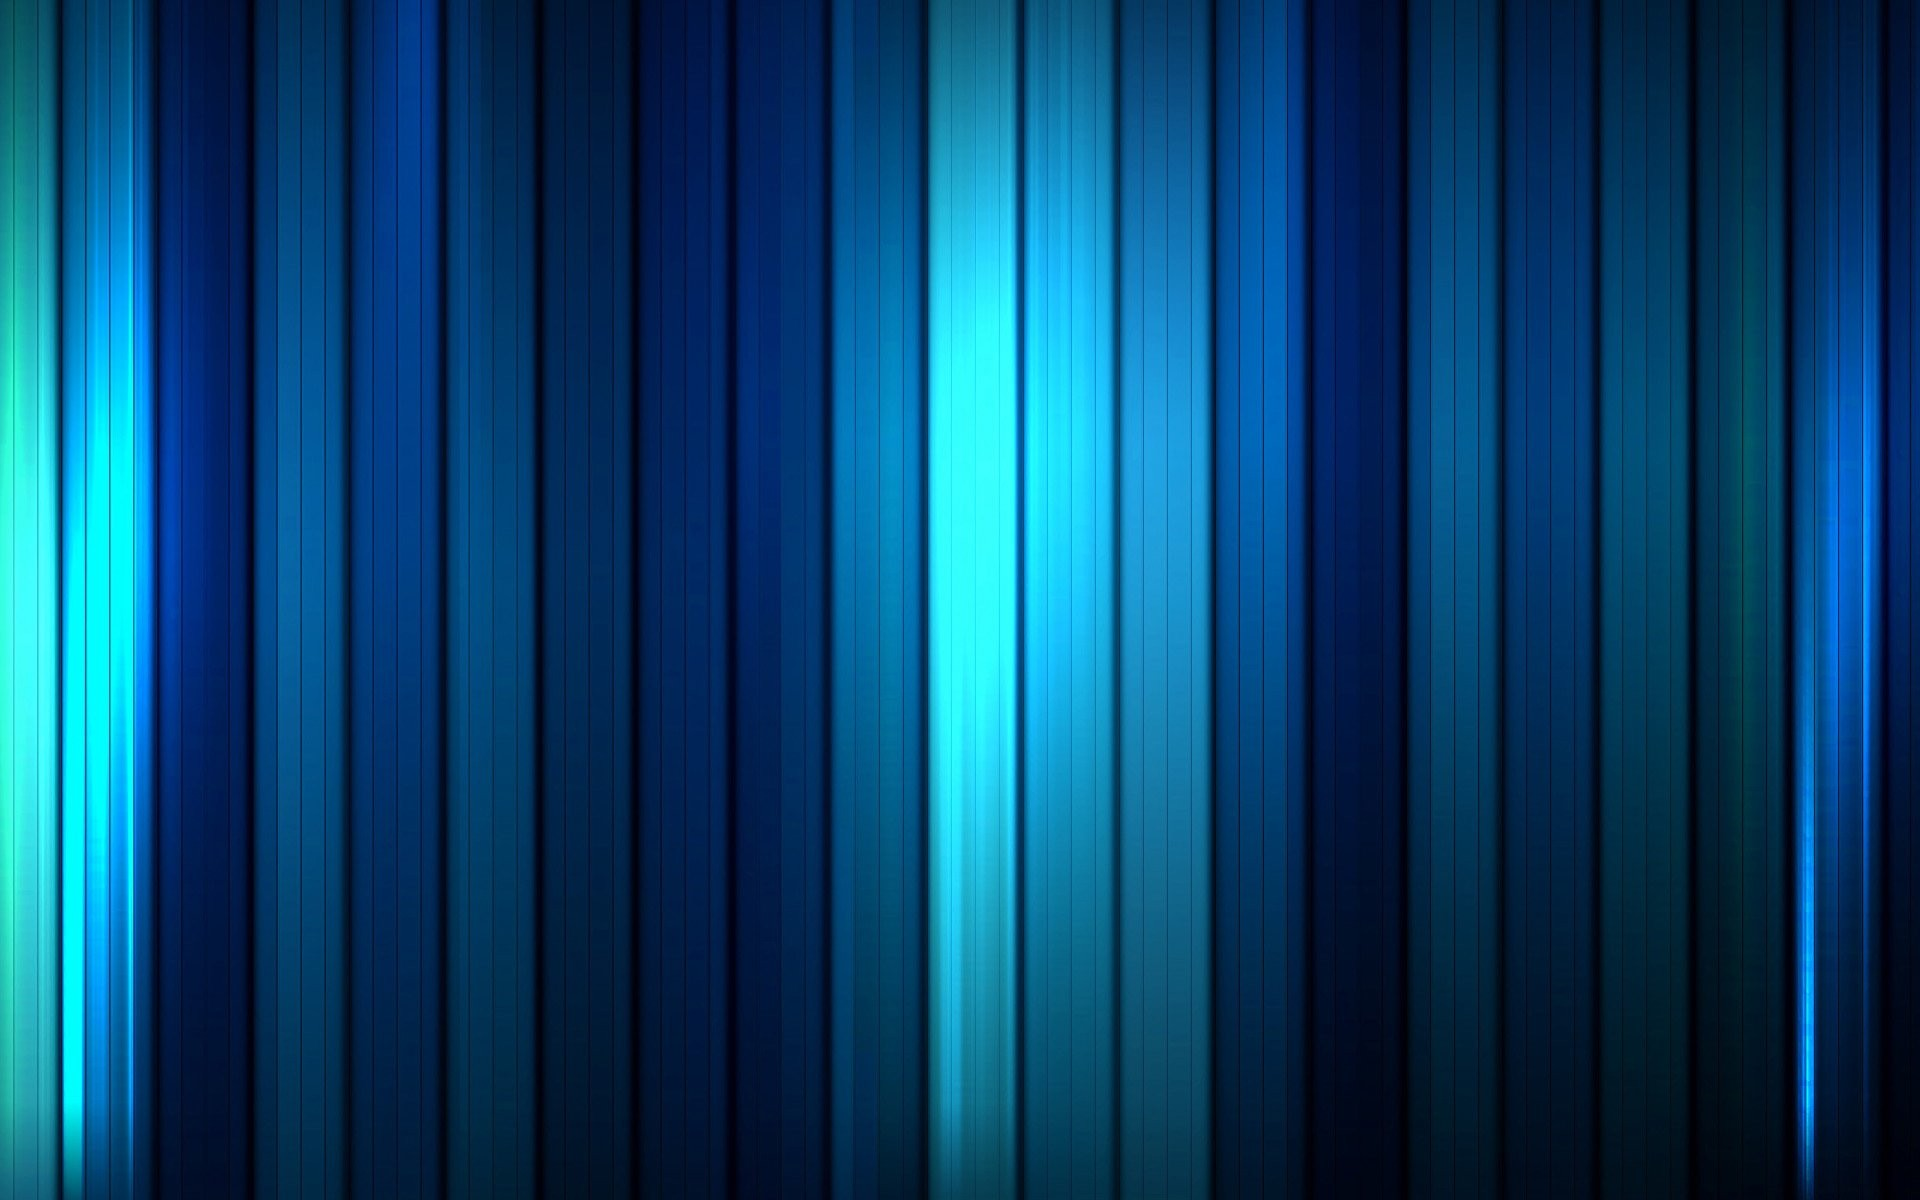 Blue Tumblr Wallpapers Mobile All Wallpaper ...